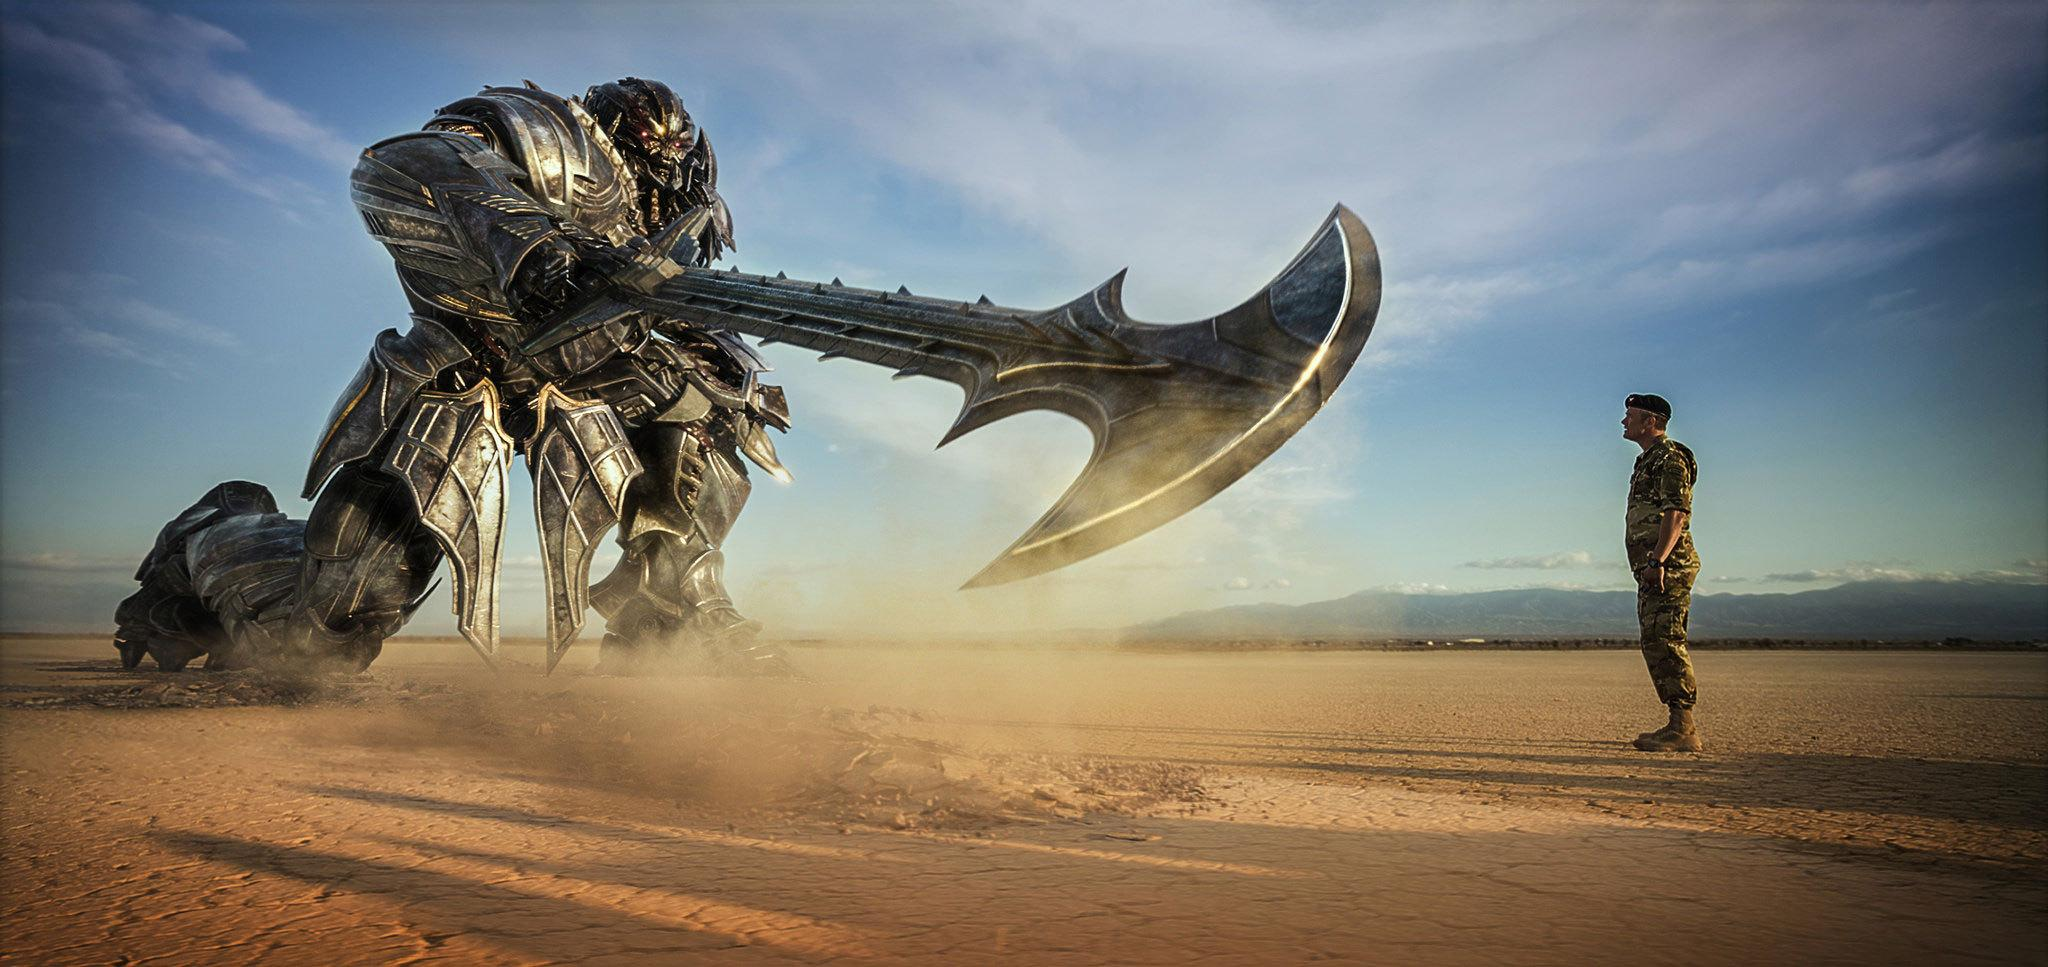 Michael Bay Rolls Out A Slew Of Stunning High-Res Stills For Transformers: The Last Knight